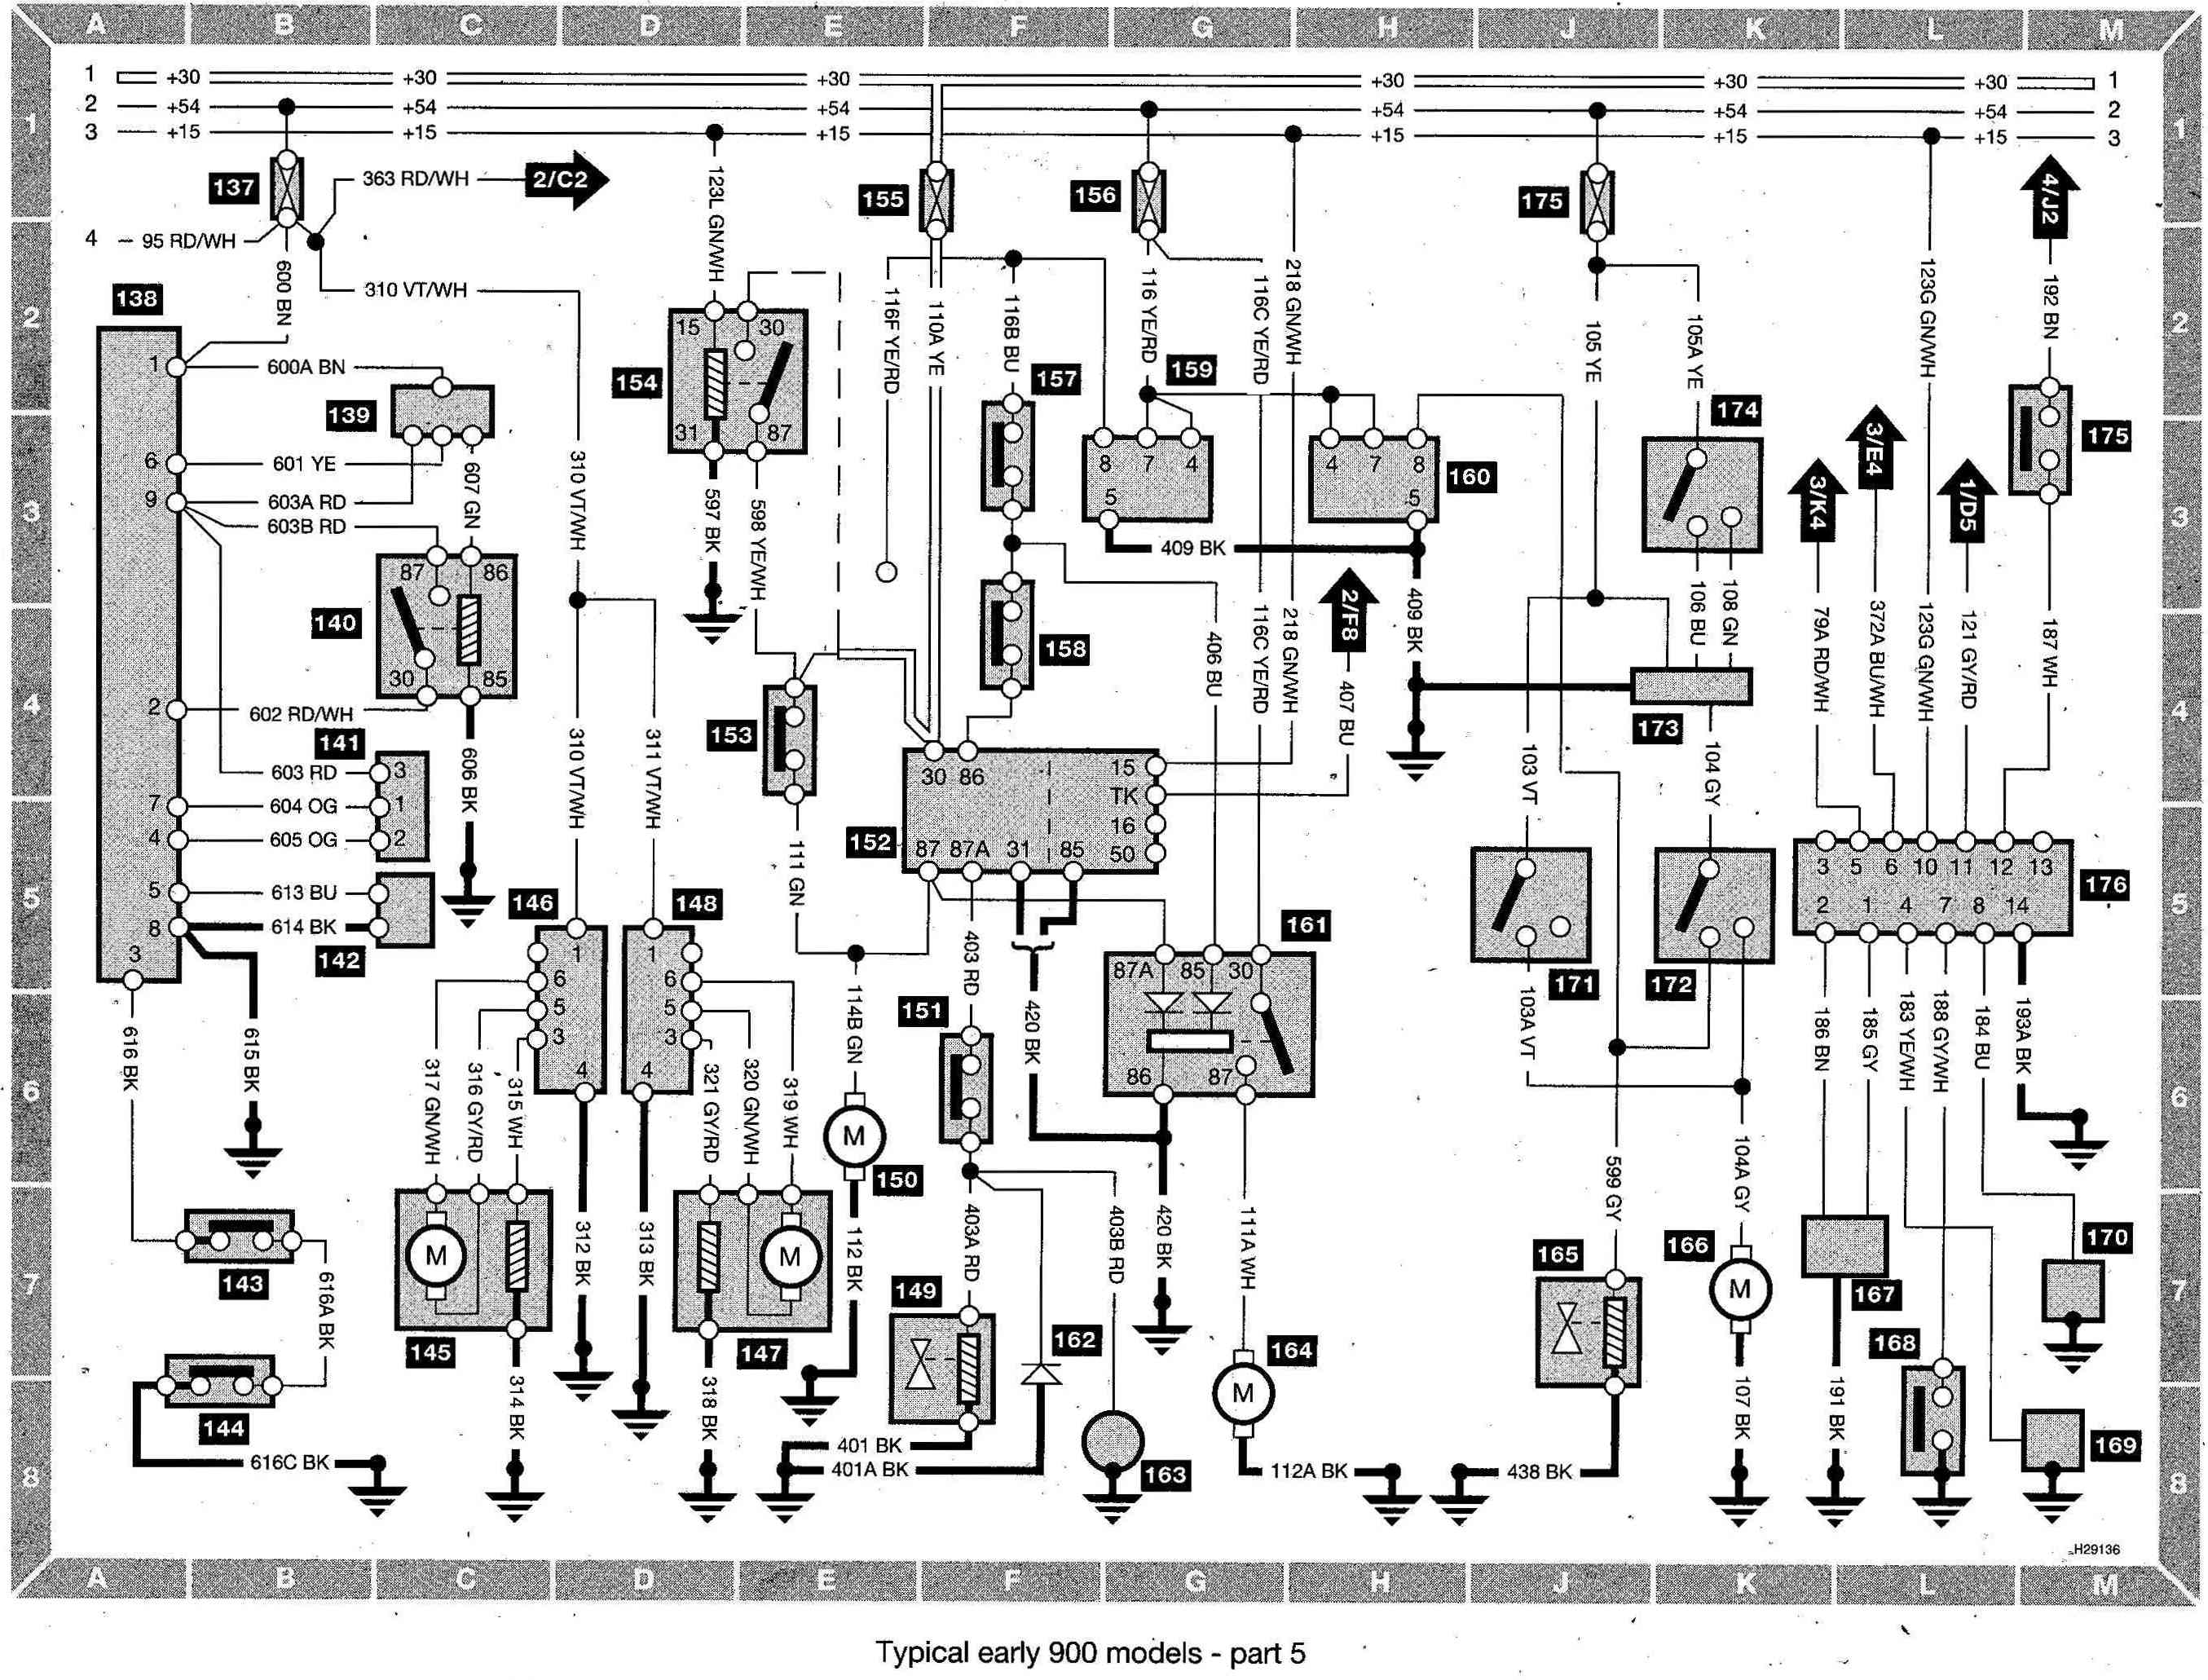 saab 9 3 radio wiring diagram another blog about wiring diagram u2022 rh  ok2 infoservice ru 2008 saab 9-3 stereo wiring diagram 2008 saab 9-3 stereo  wiring ...